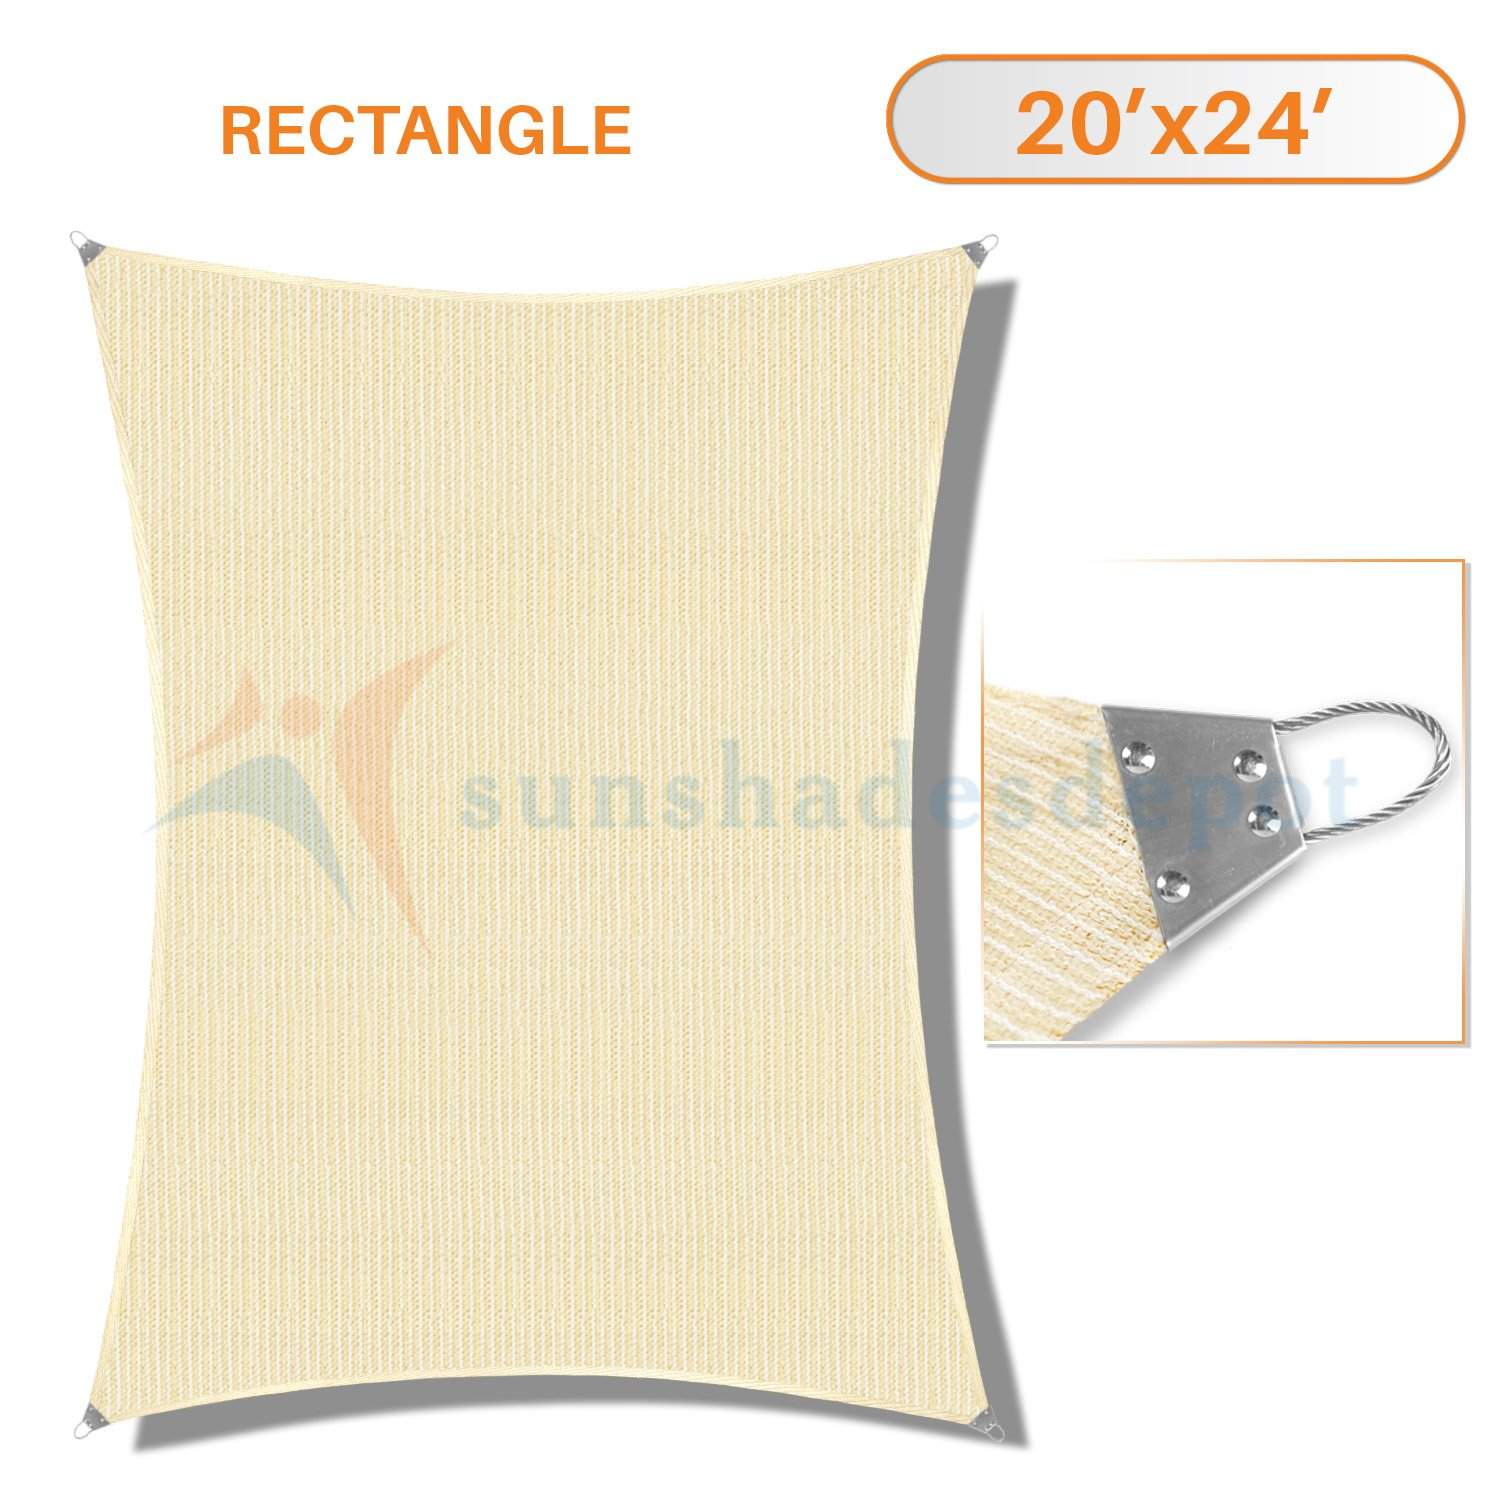 Sunshades Depot 20'x 24' Reinforcement Large Sun Shade Beige Rectangle Heavy Duty Metal Spring/Steel Wire Outdoor Permeable UV Block Fabric Durable Steel Wire Strengthen 160 GSM